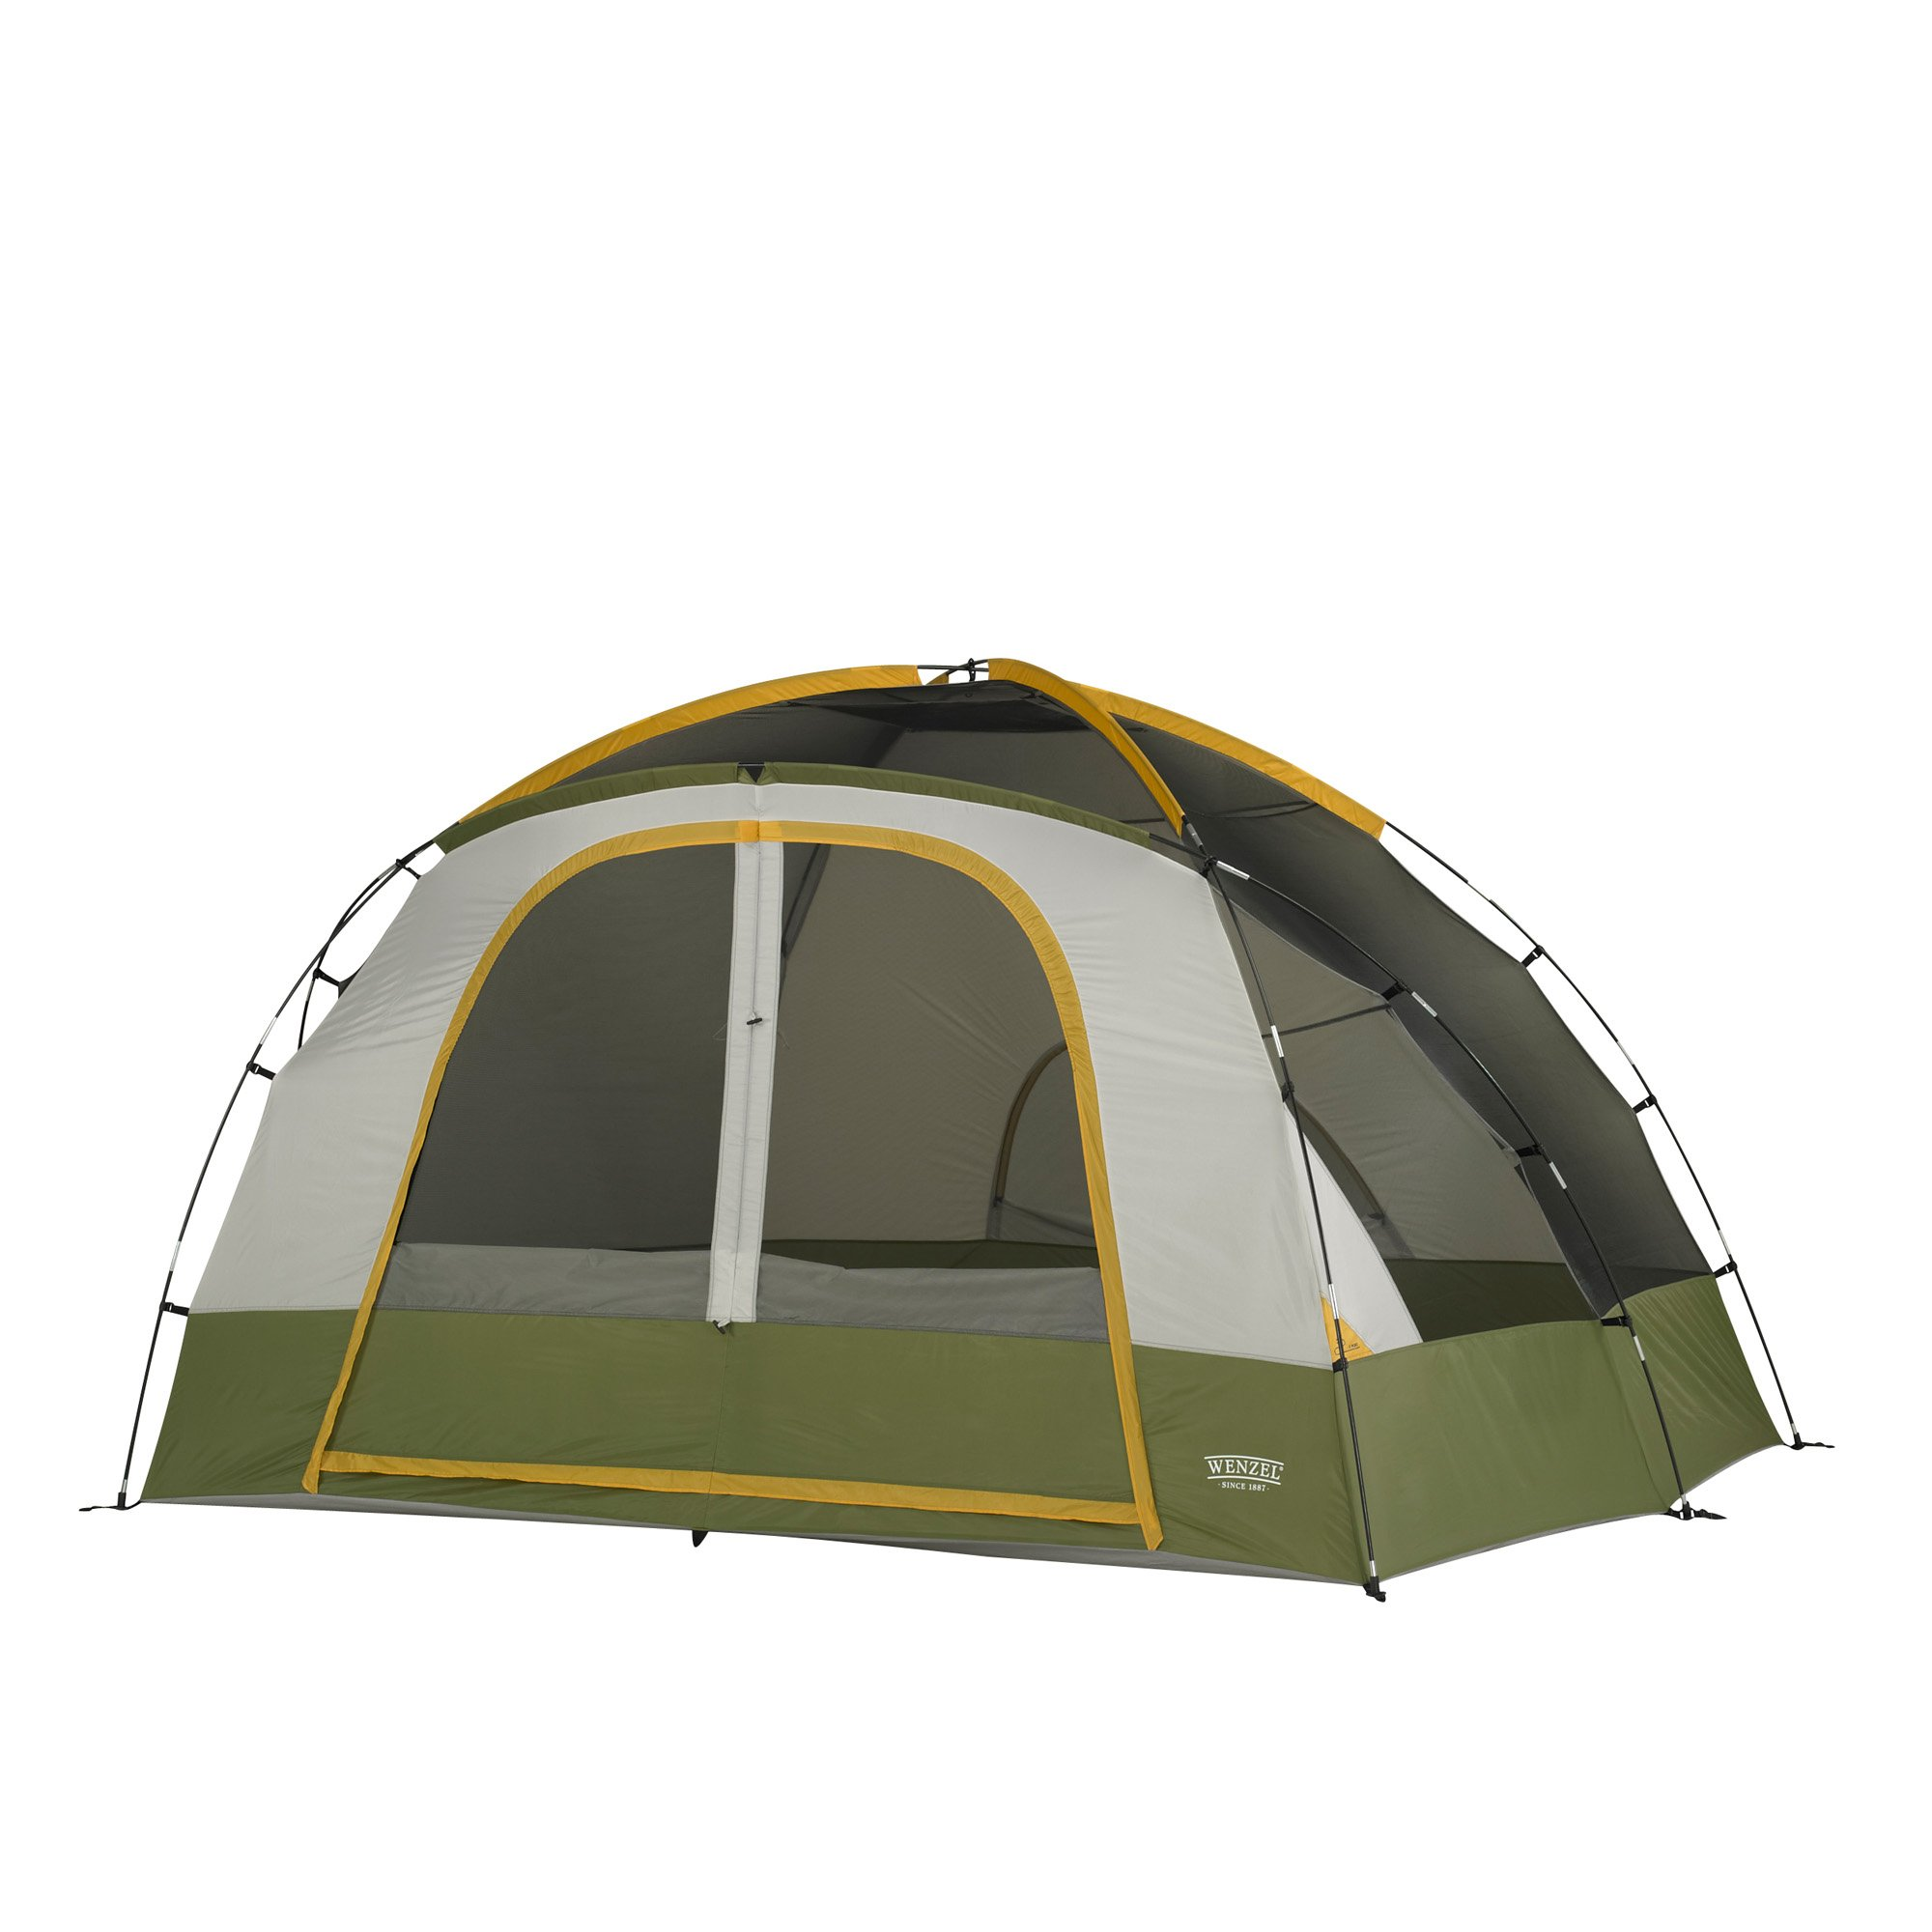 Wenzel Evergreen Tent - 6 Person by Wenzel (Image #2)